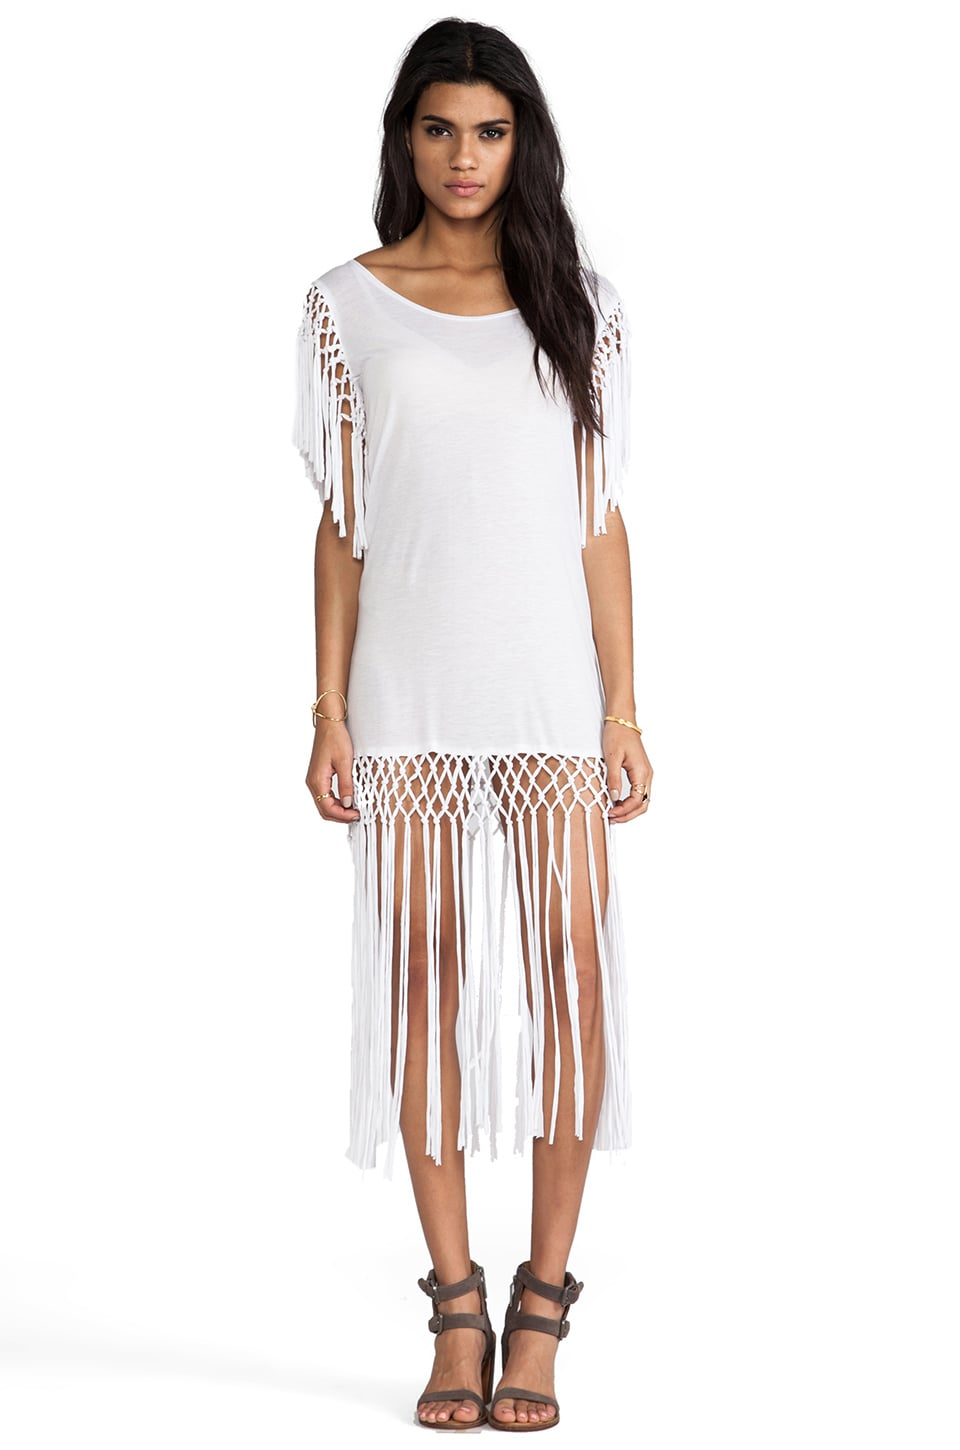 RVCA Wanderlush Coverup in Vintage White